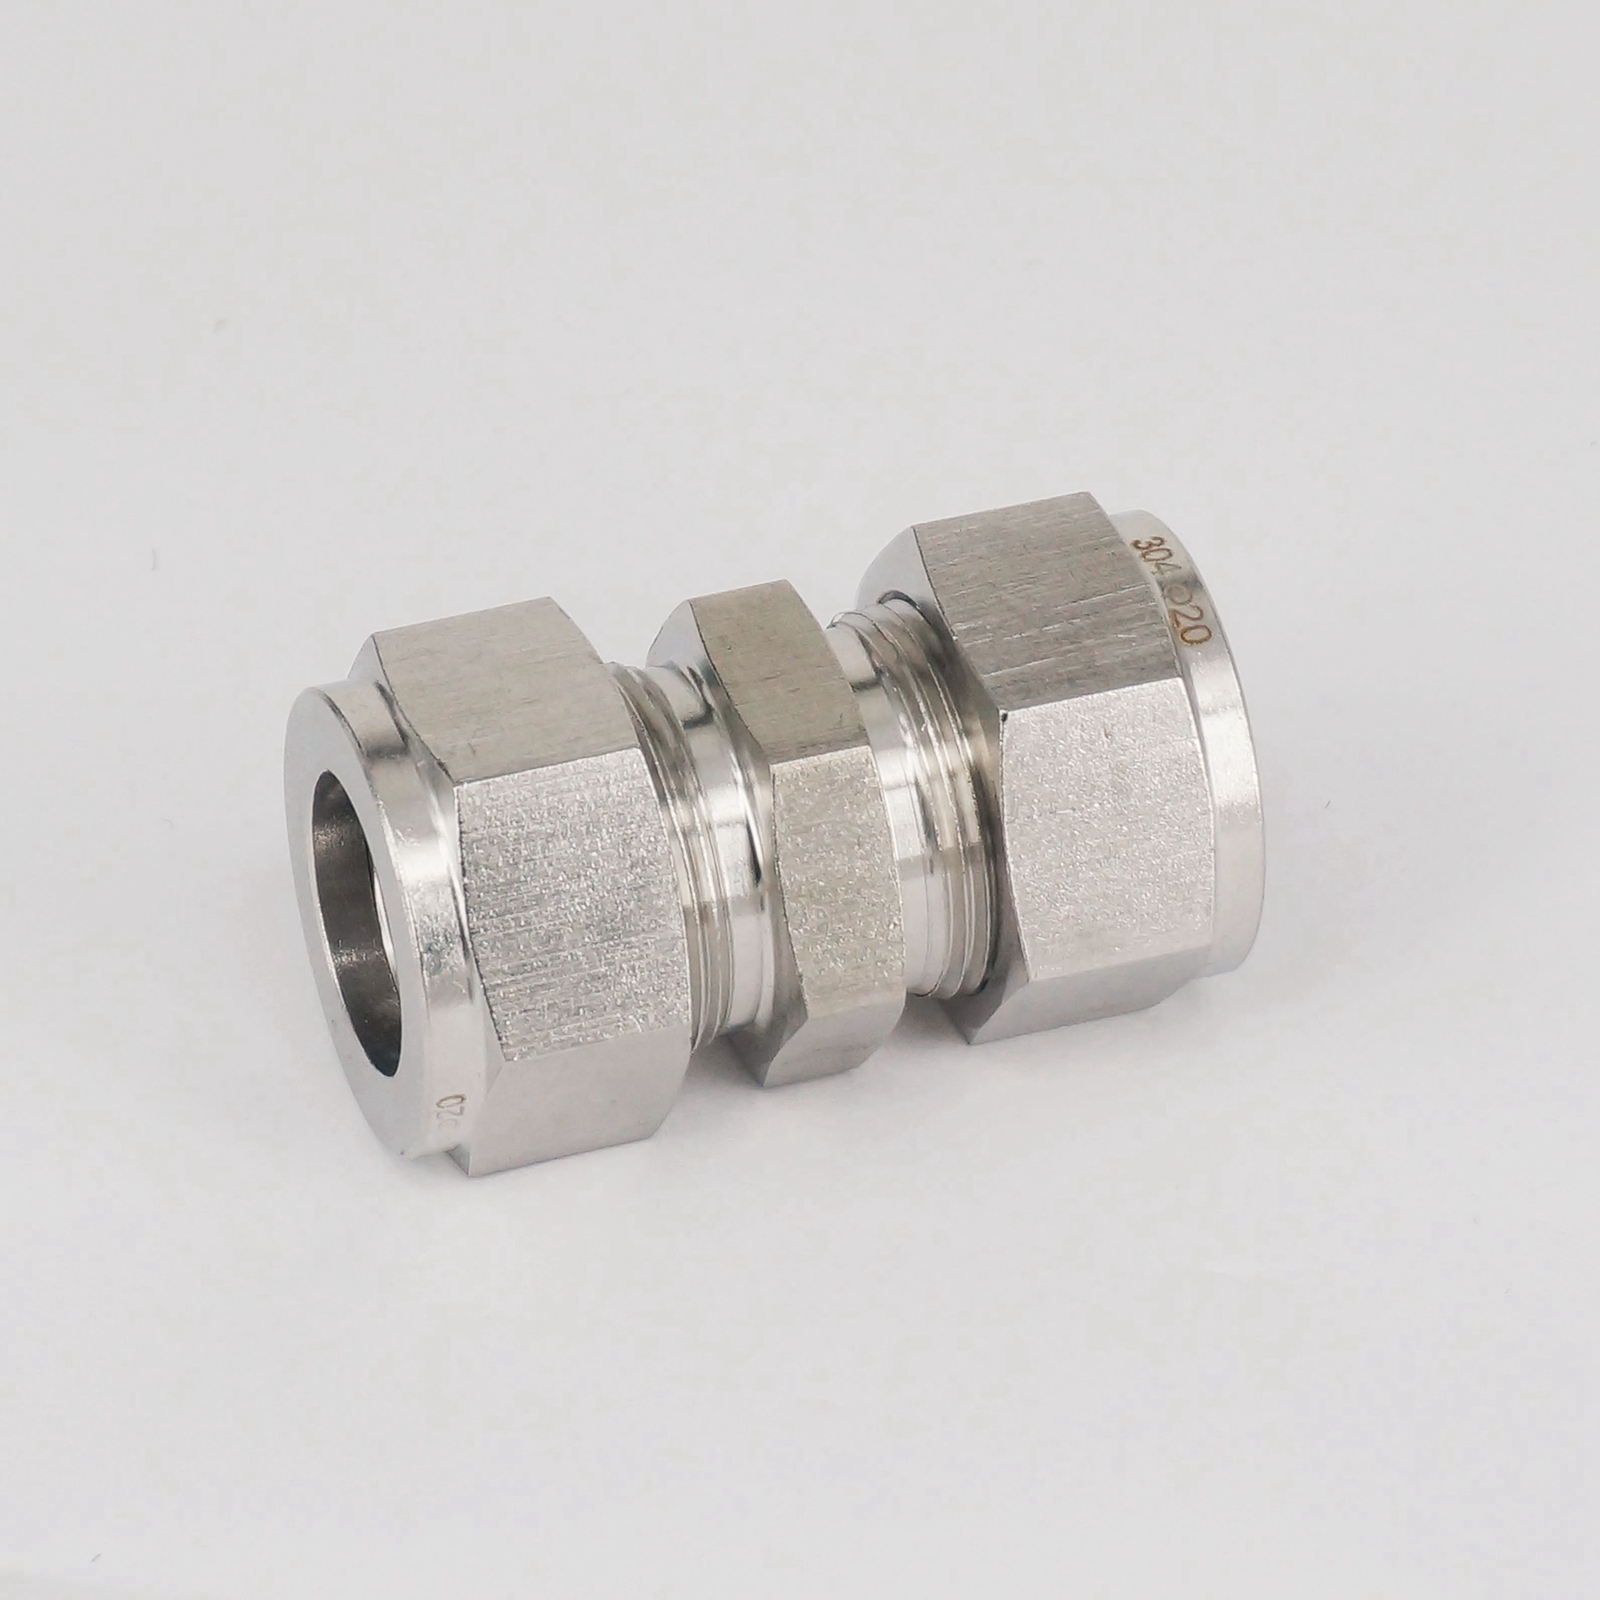 Stainless steel fit mm od tube coupler adapter